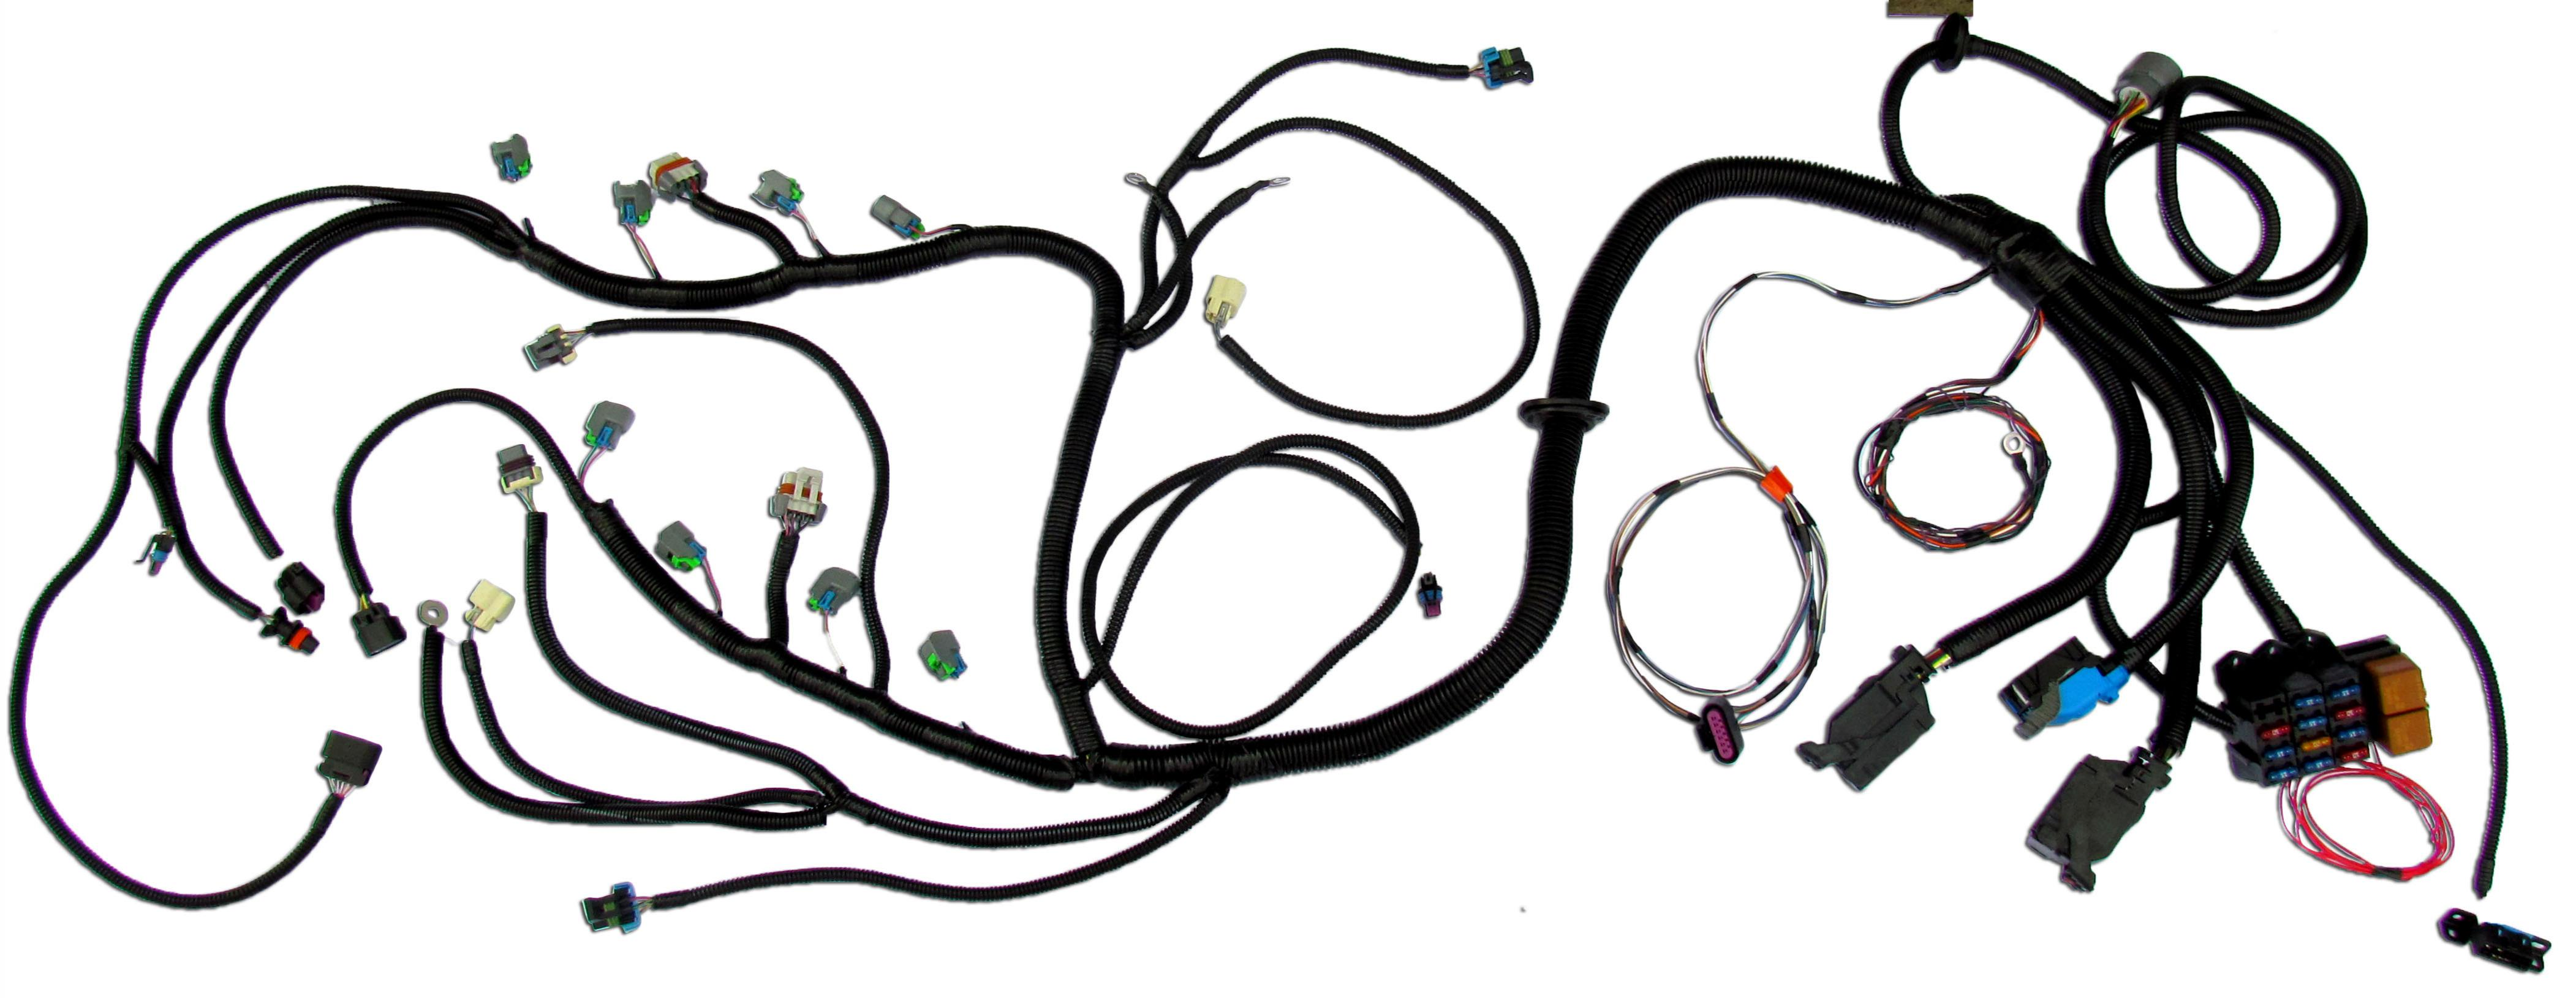 Wiring Harness From Performance Systems Integration Psi